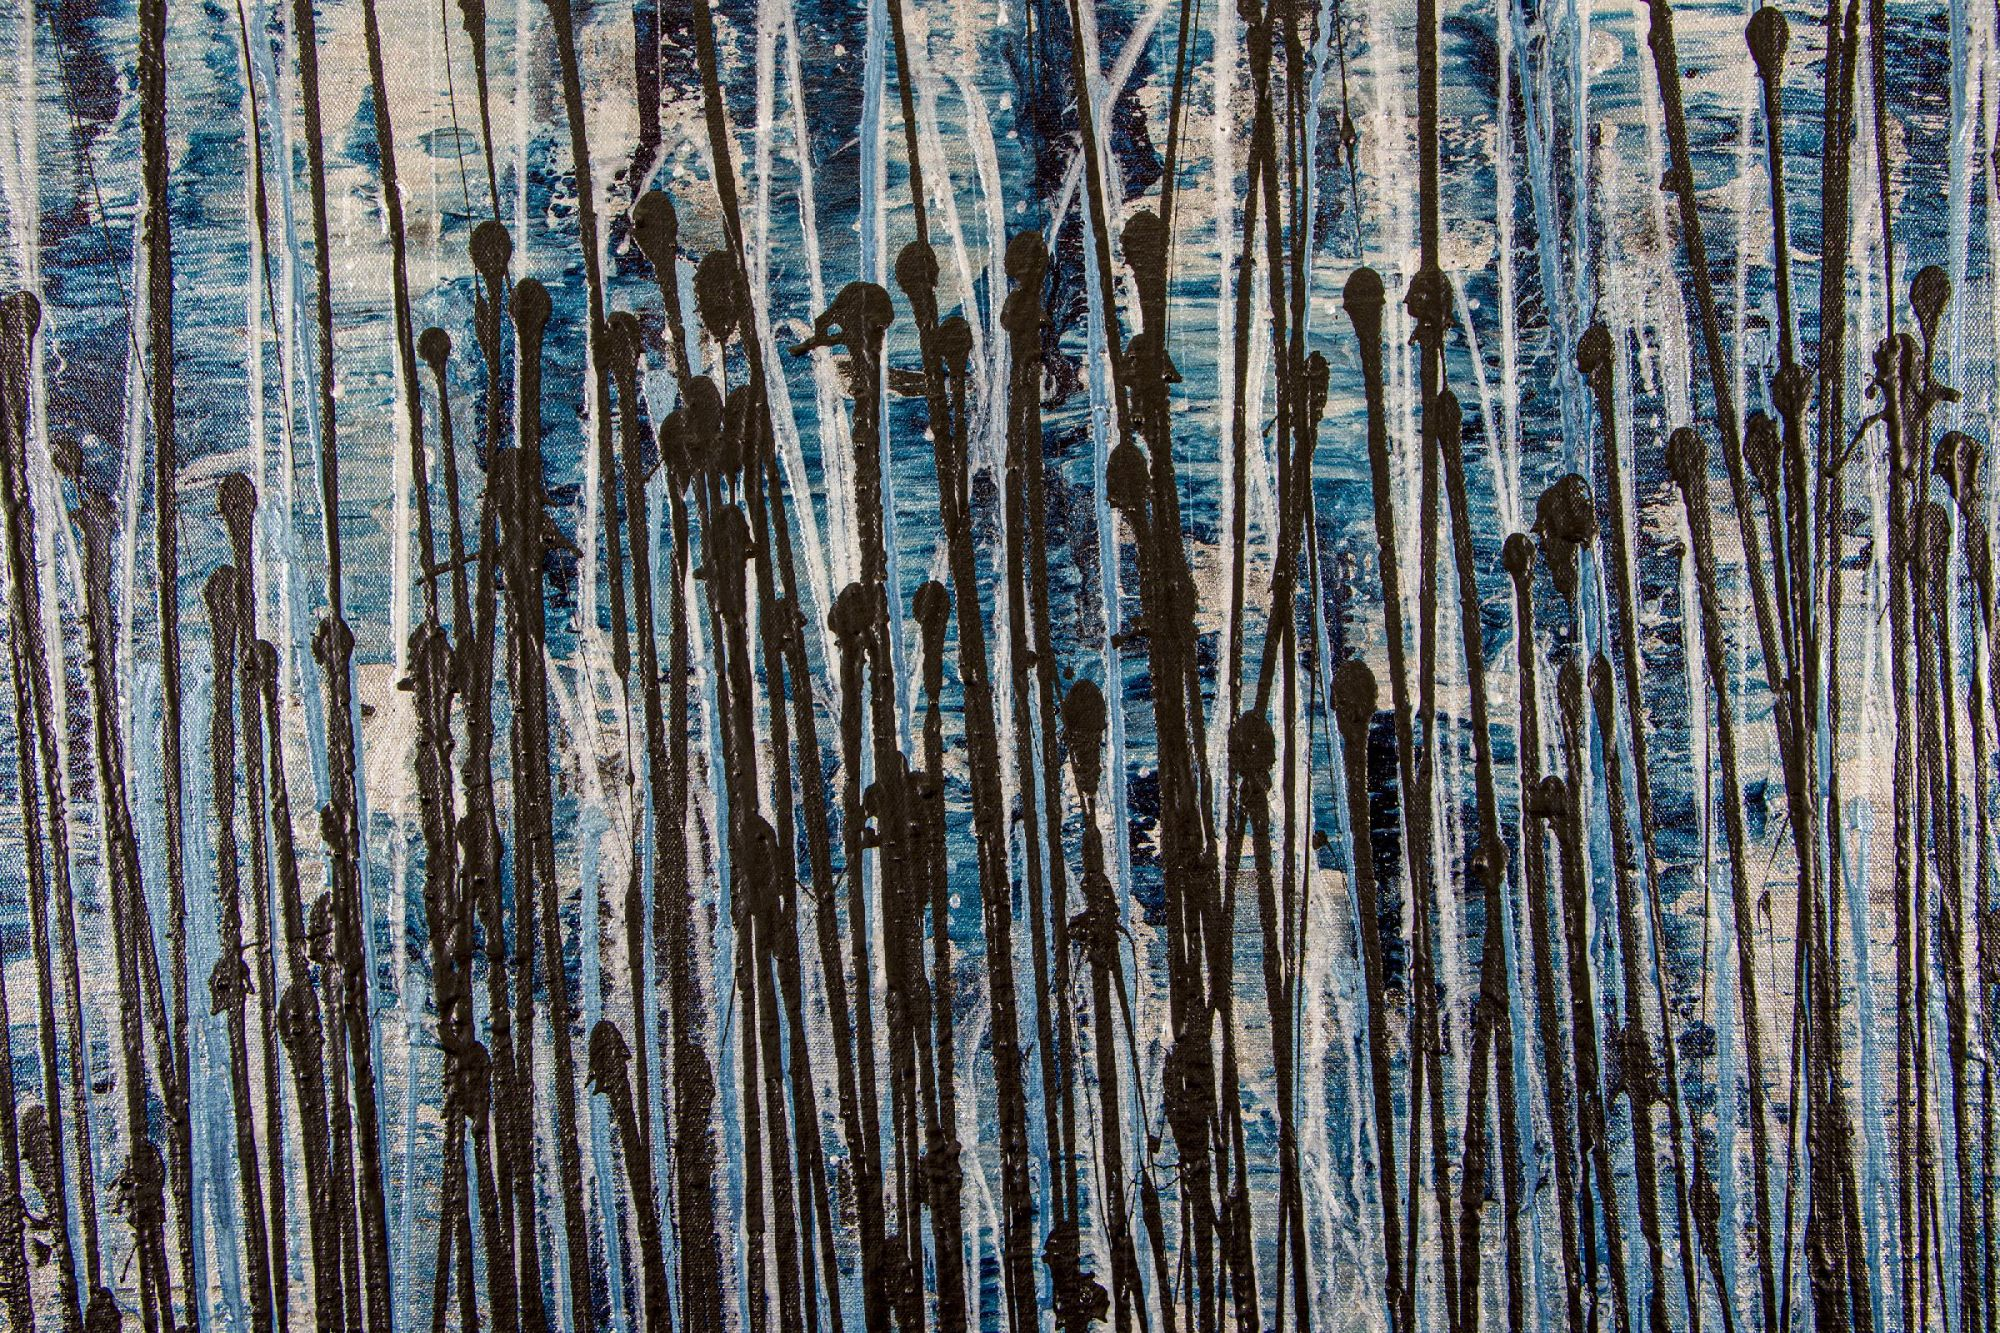 Nighttime Fearlessness 2 (2020) - Original Abstract Expressionist painting by Nestor Toro